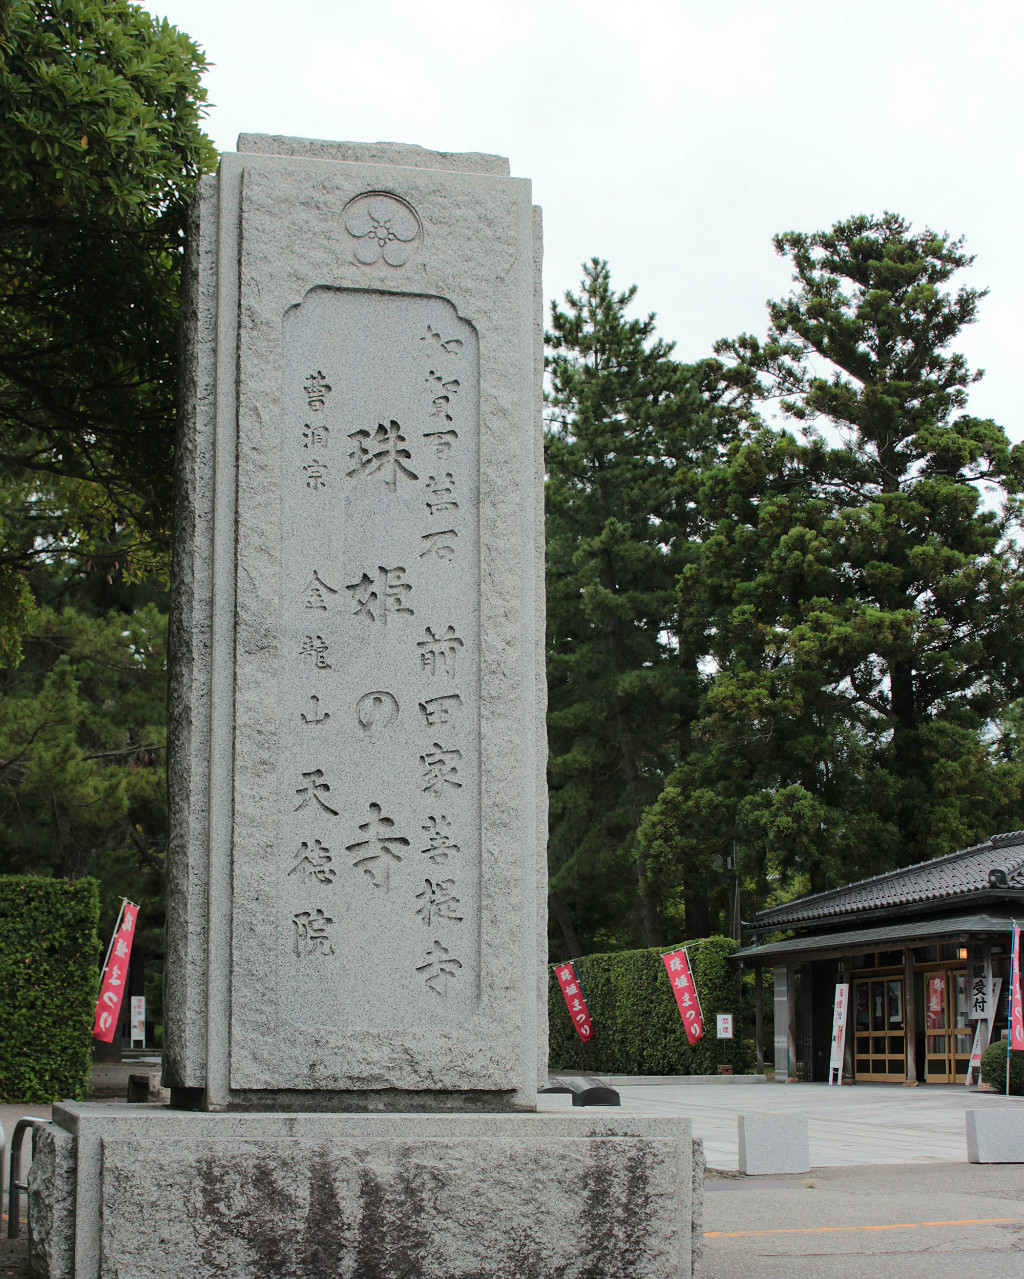 Stone tablet outside Tentokuin, the Princess Temple in Kanazawa, Japan